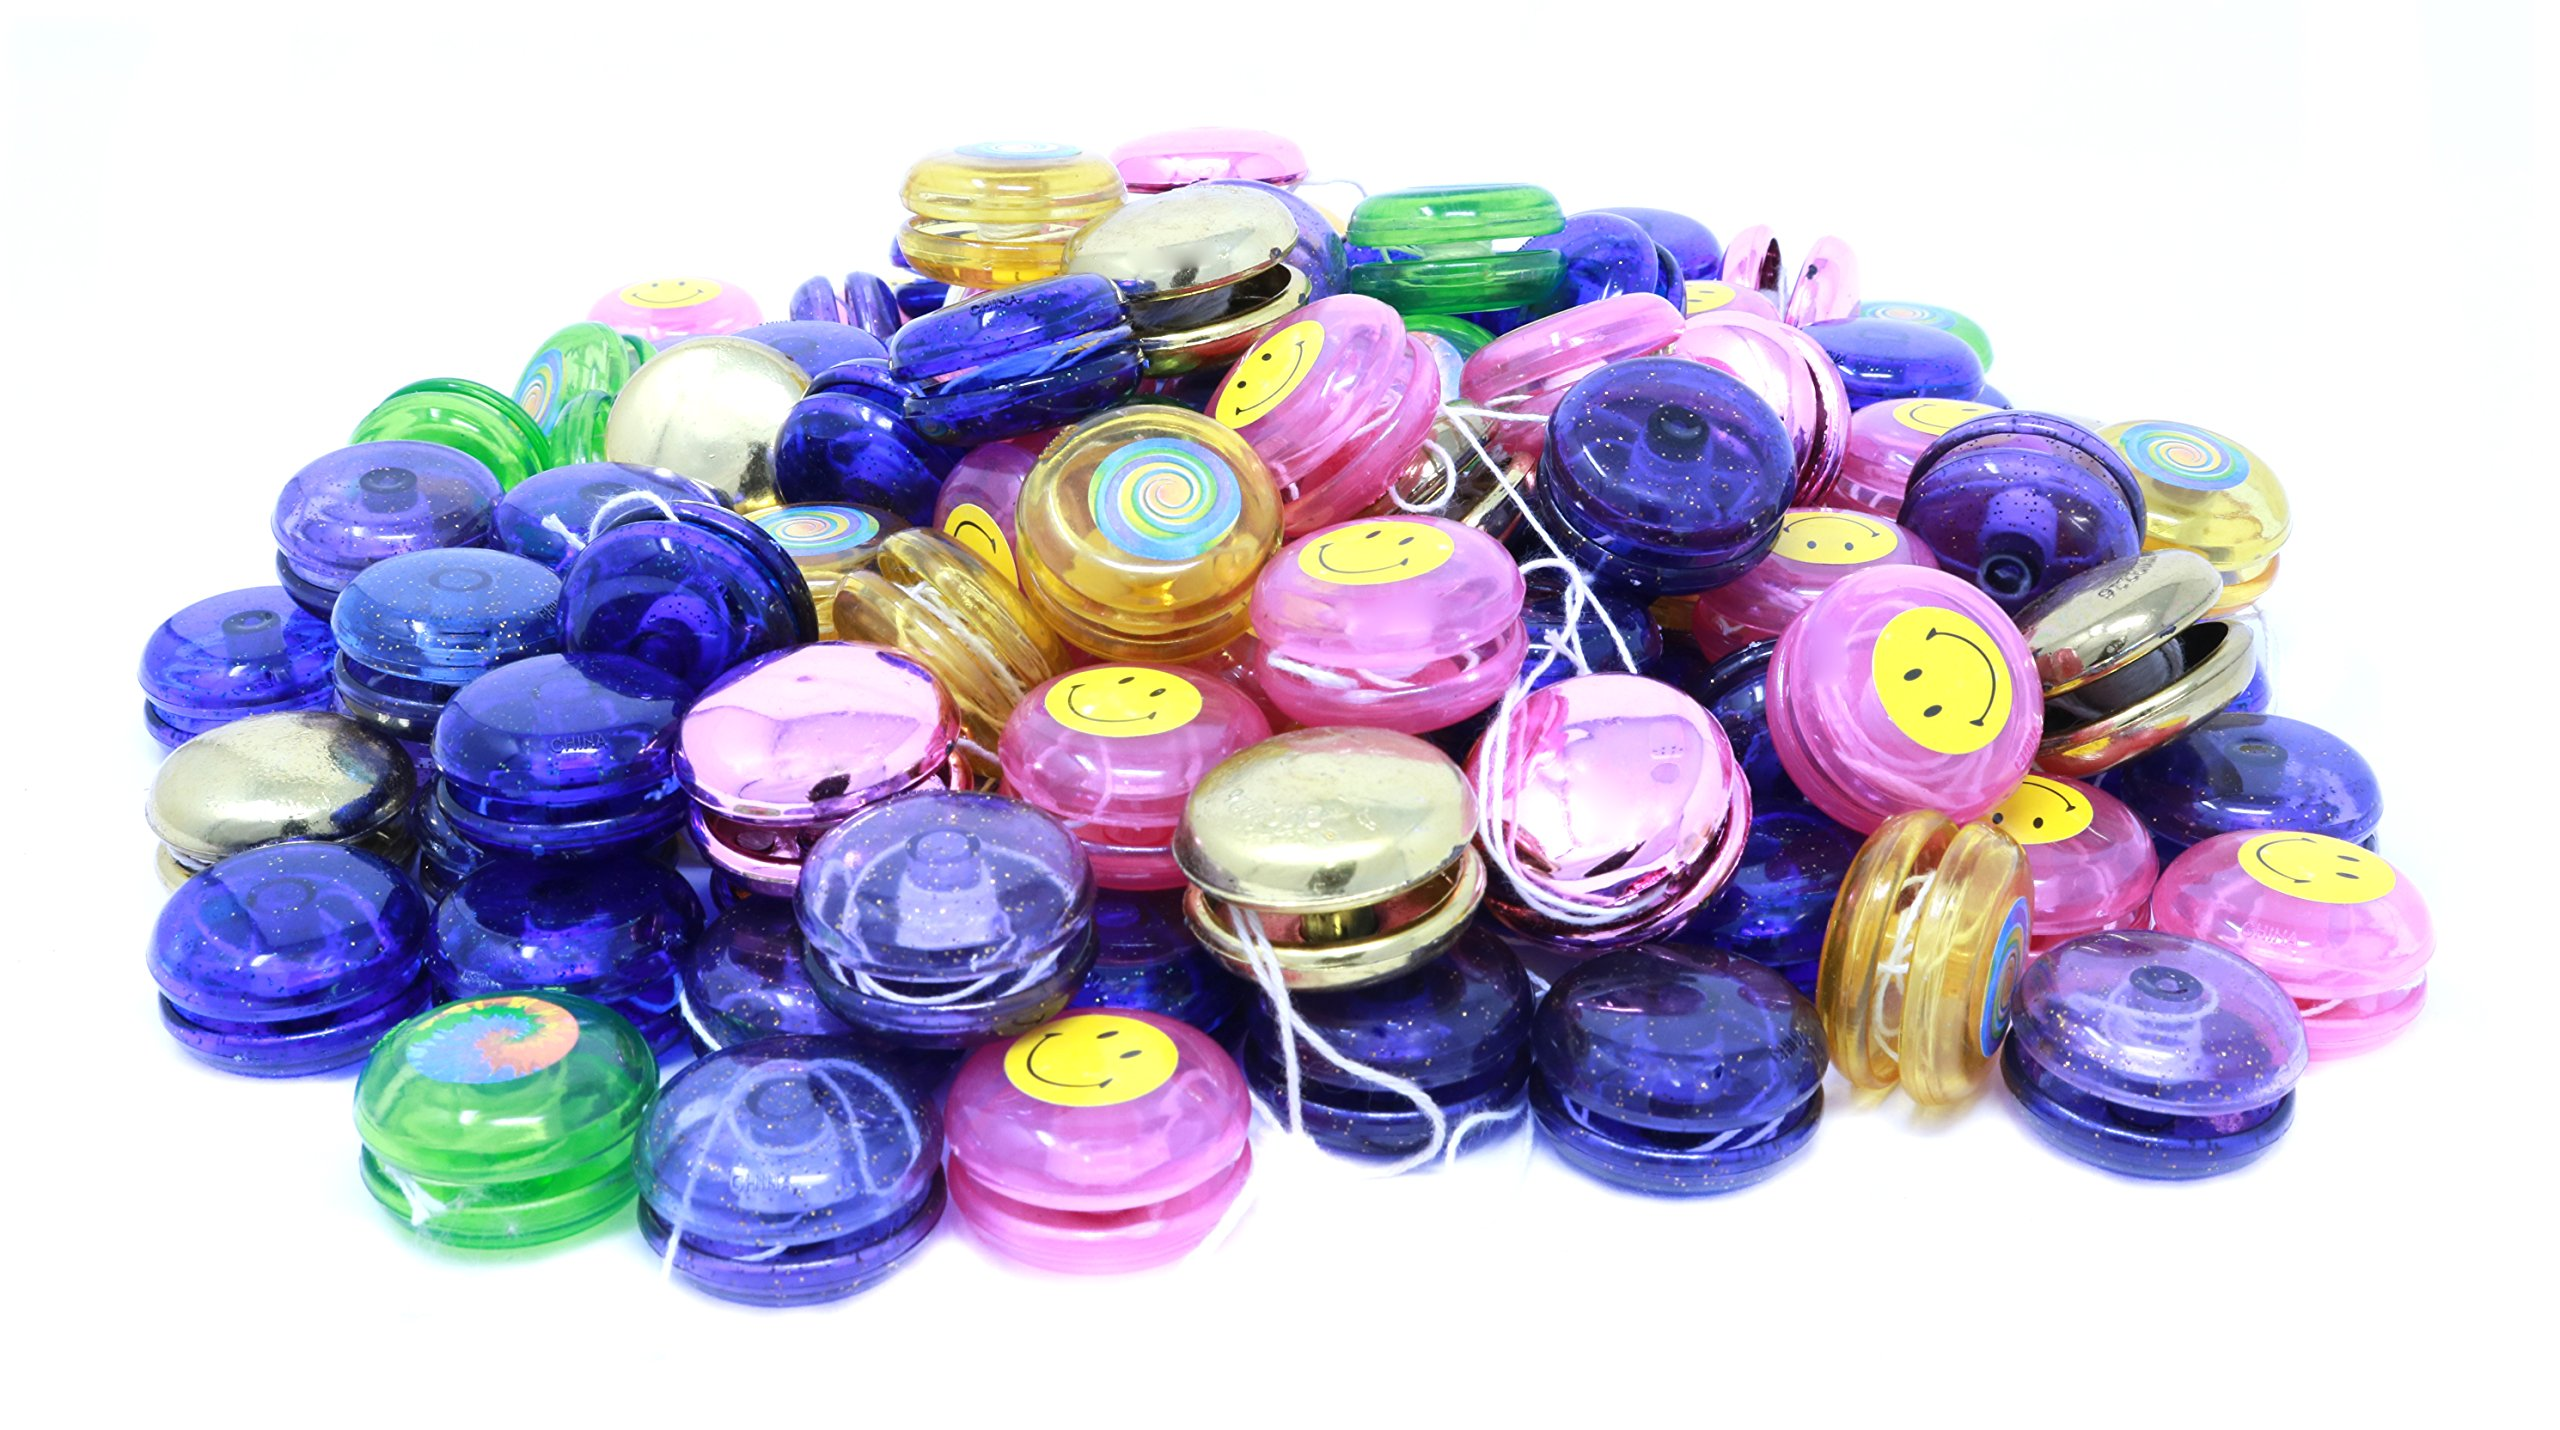 Mini Yoyo Assortment - Bulk Pack Of 144 Yo Yos In Bright Colors And Styles by SNInc.